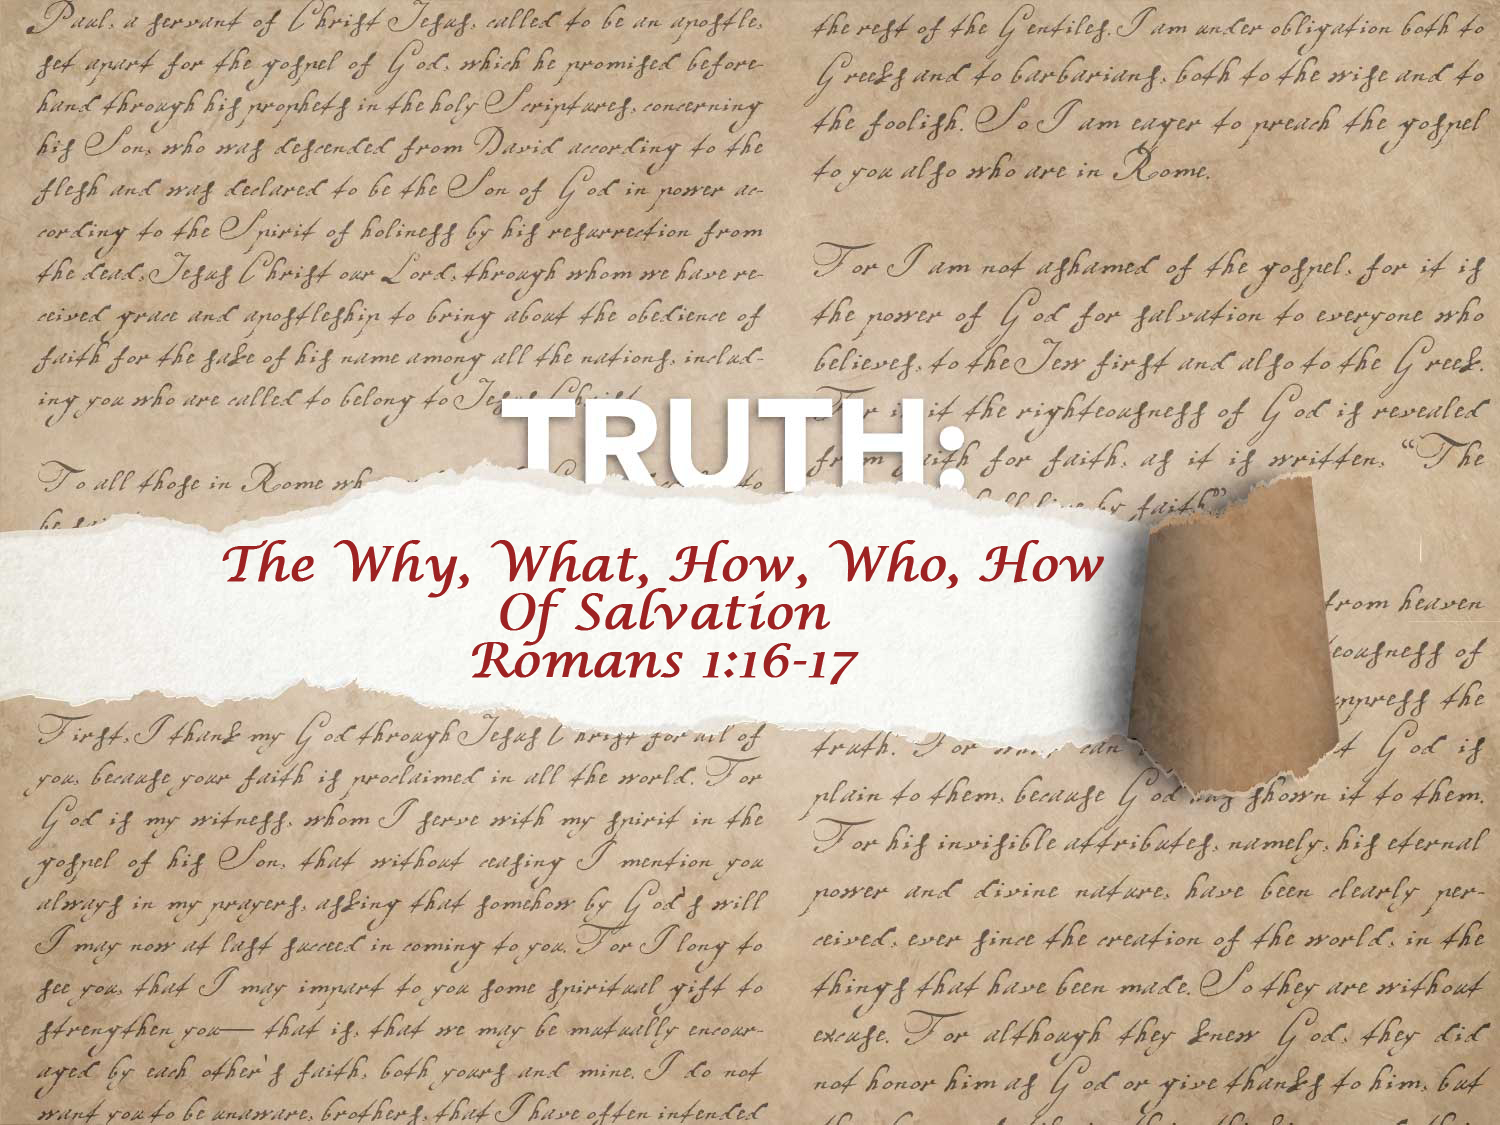 Romans 1:16-17 The Why What How Who How of Salvation